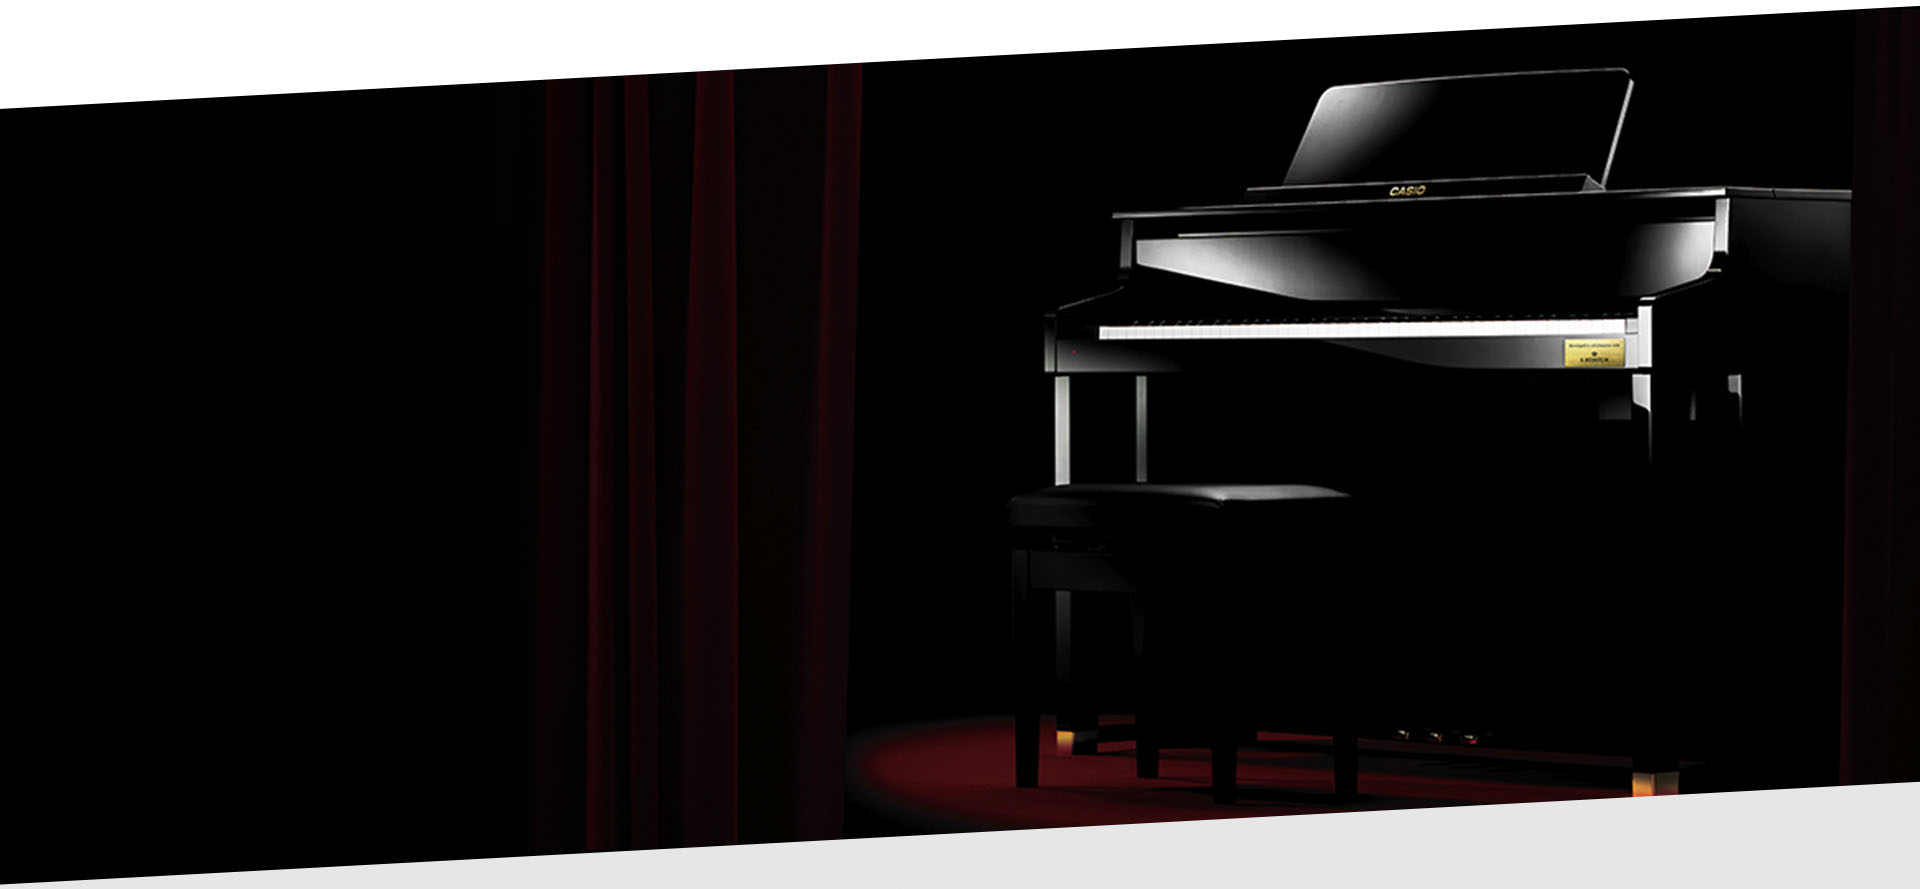 Celviano Grand Hybrid - The perfect combination of innovation and tradition.